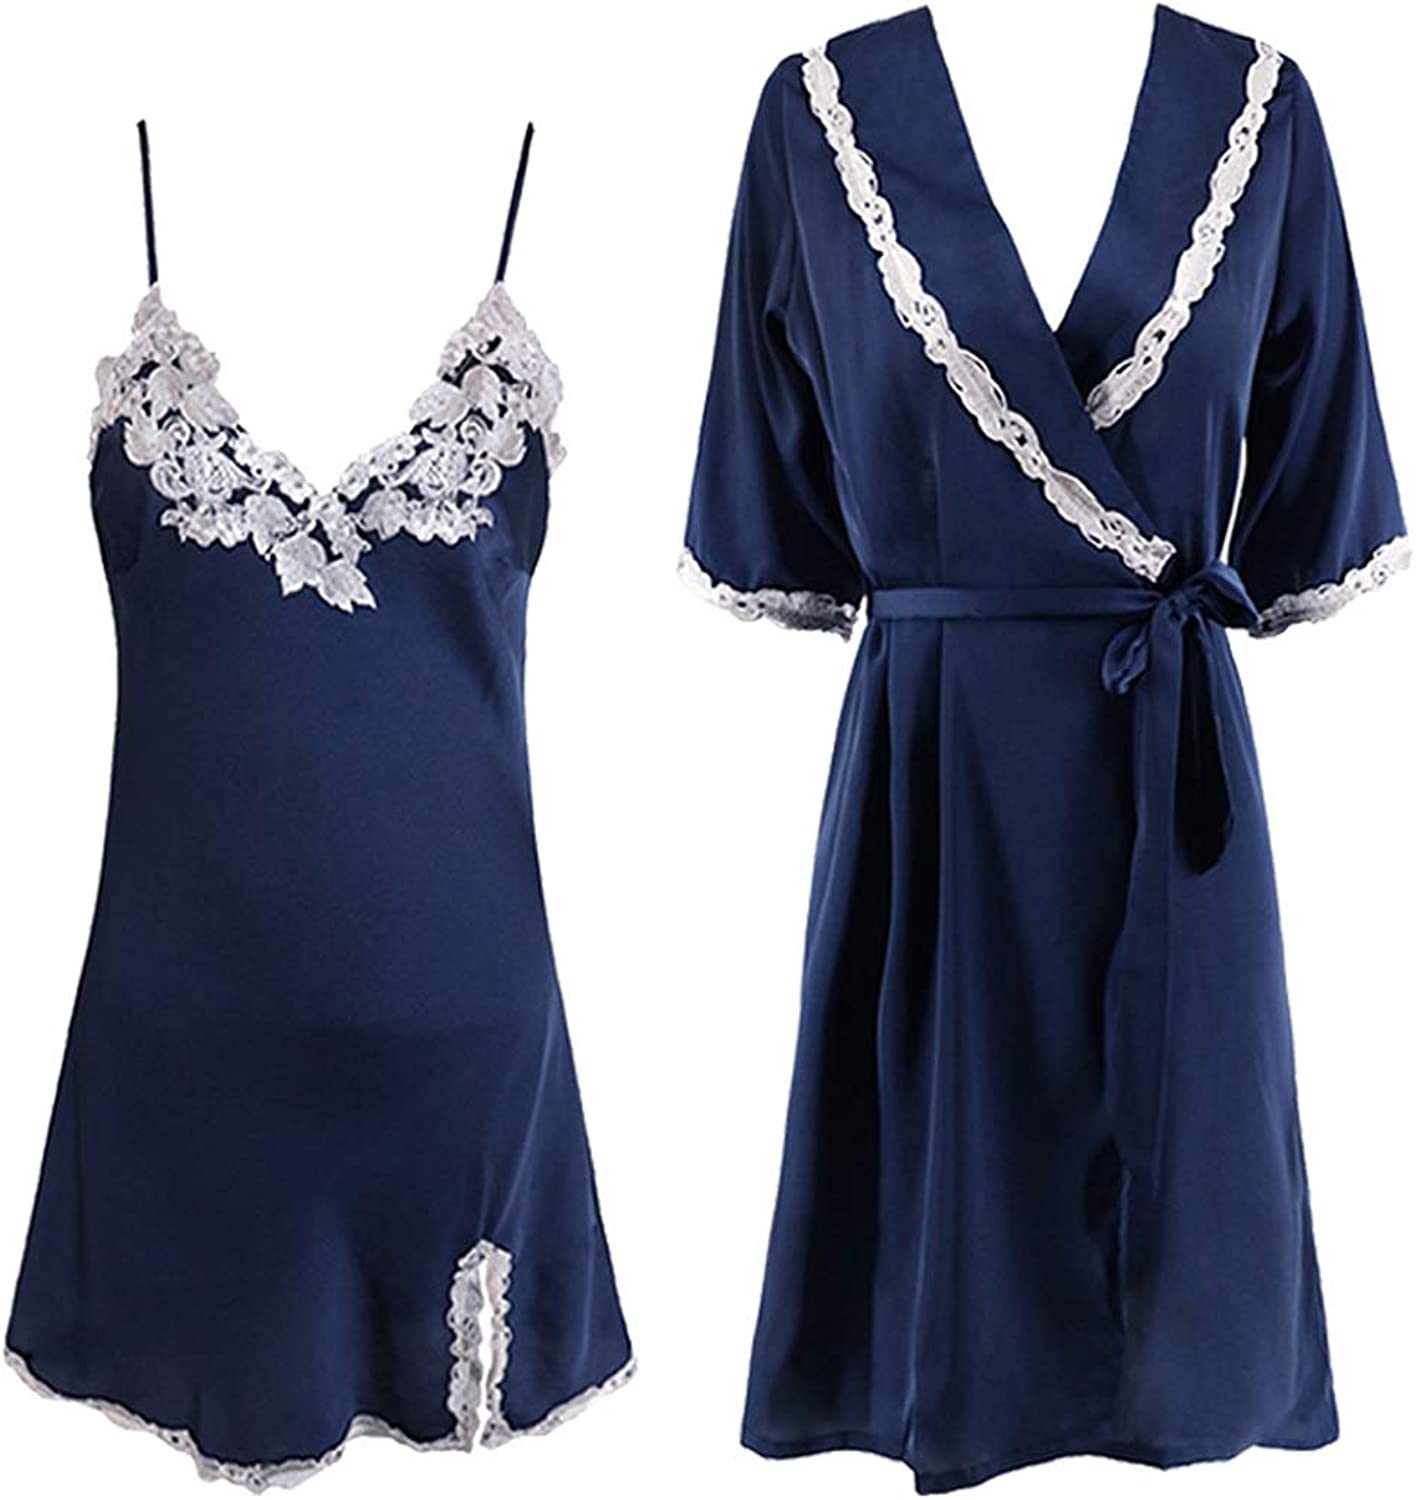 Home Service Female Sexy VNeck Lace Side Strap Pajamas Long Section Home Robe TwoPiece Suit (color   Navy, Size   L)